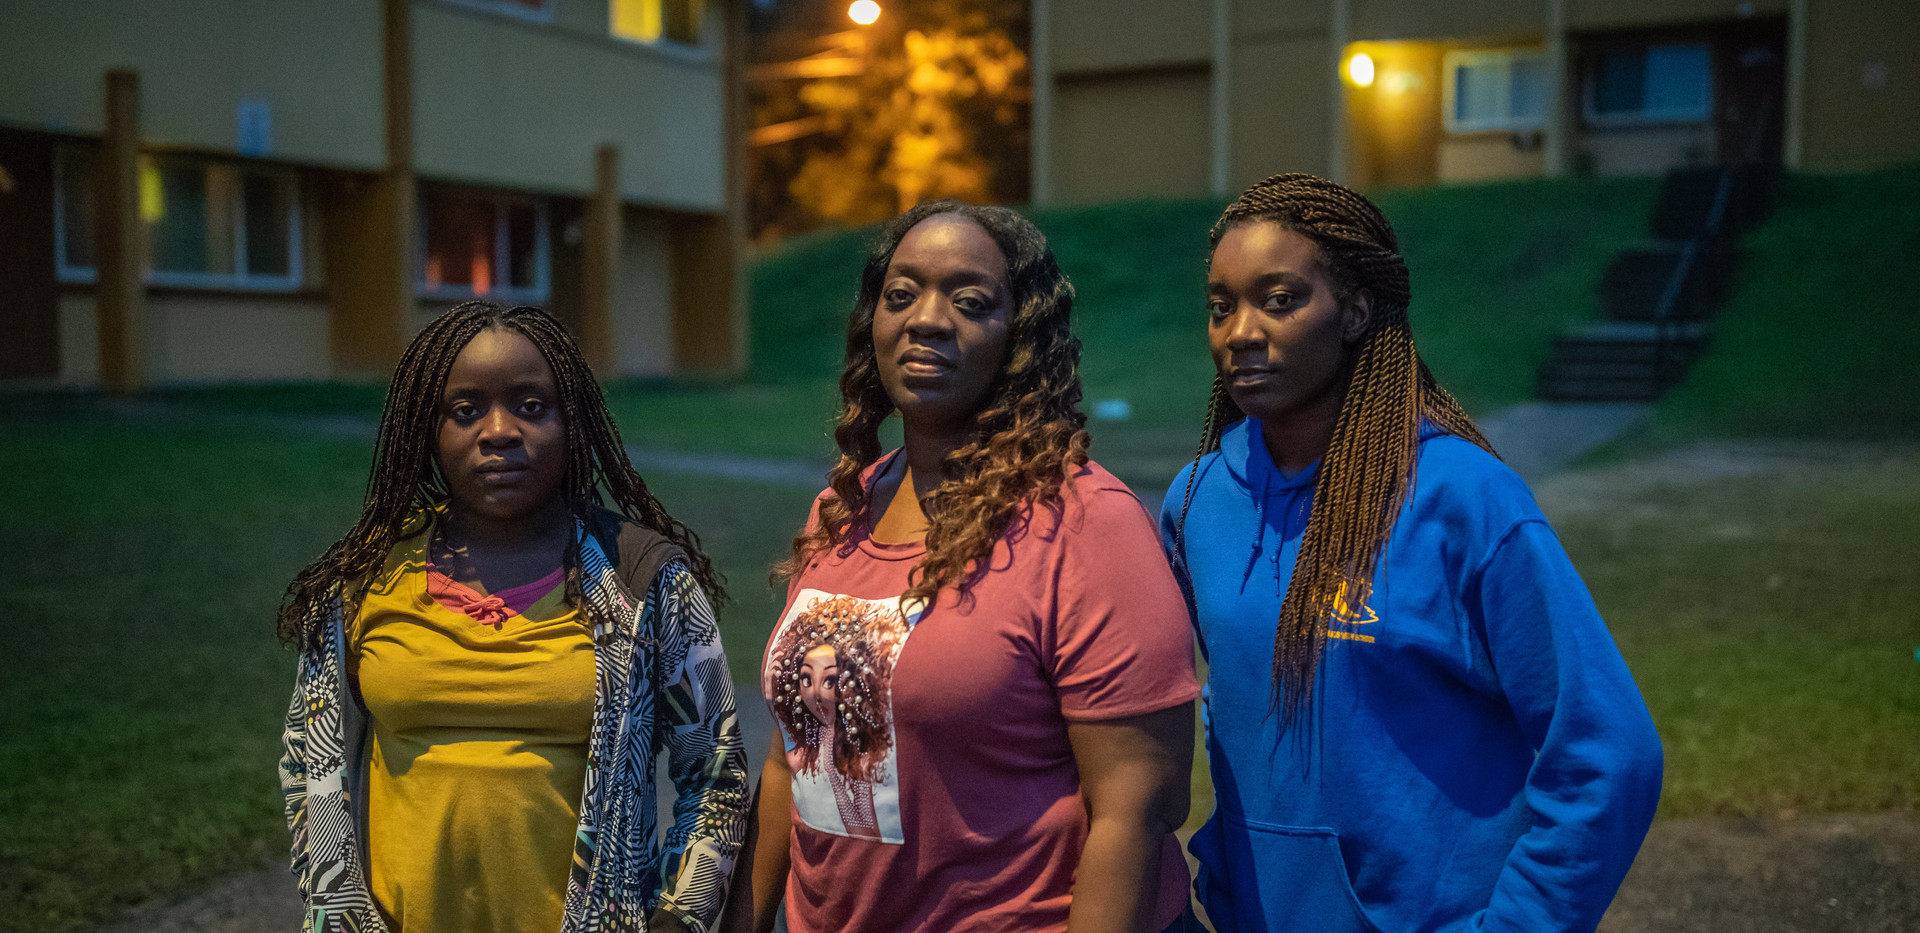 Kisha Simms, 38, center, poses with her daughters Deitra Jackson, 11, and Lynaya Saylor, 18, under the glow of a street light outside their Springfield Apartment residence.